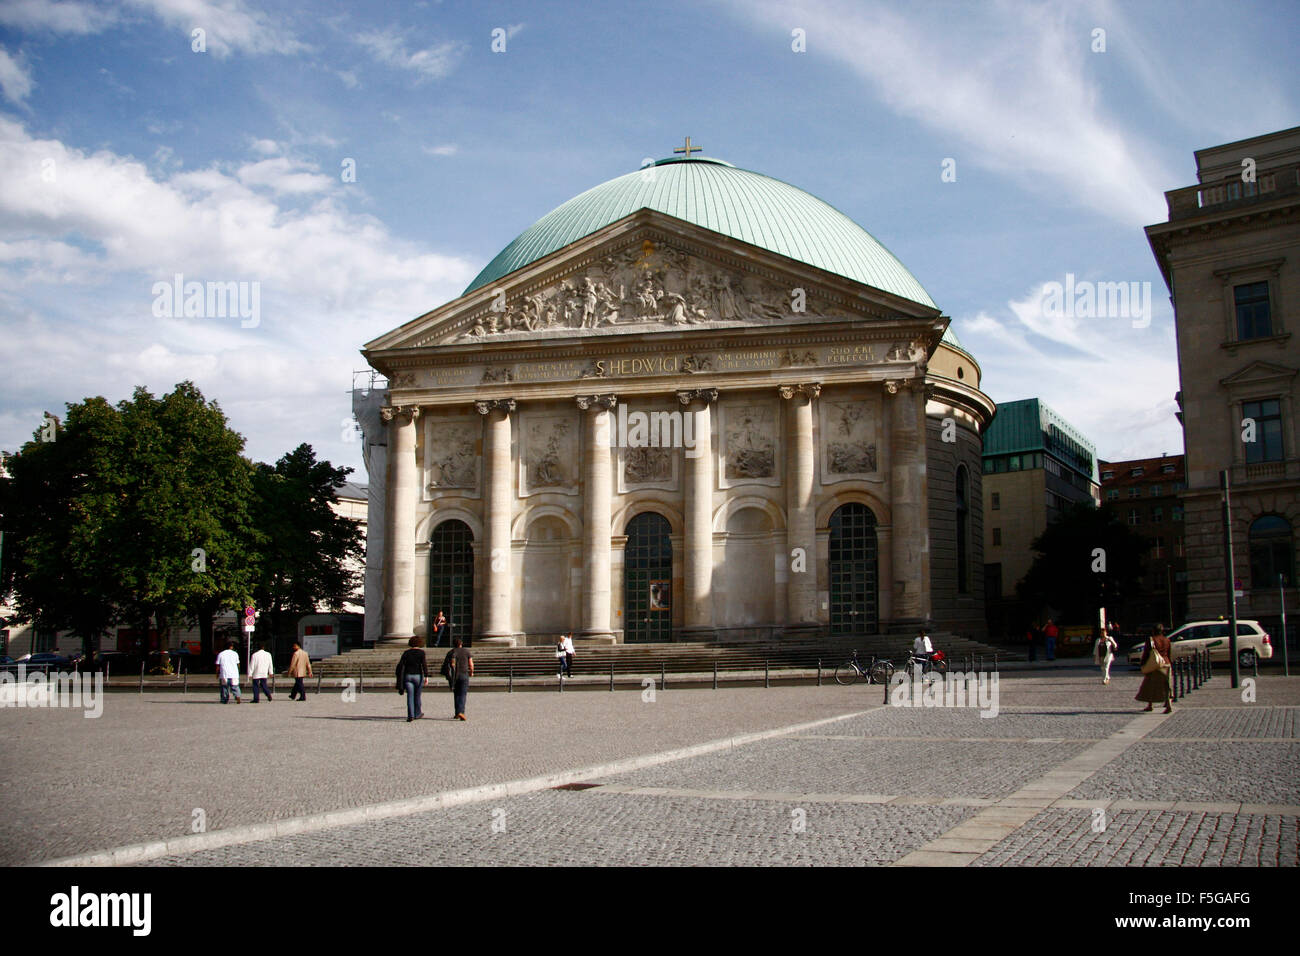 Hedwigskirche, Berlin-Mitte. - Stock Image